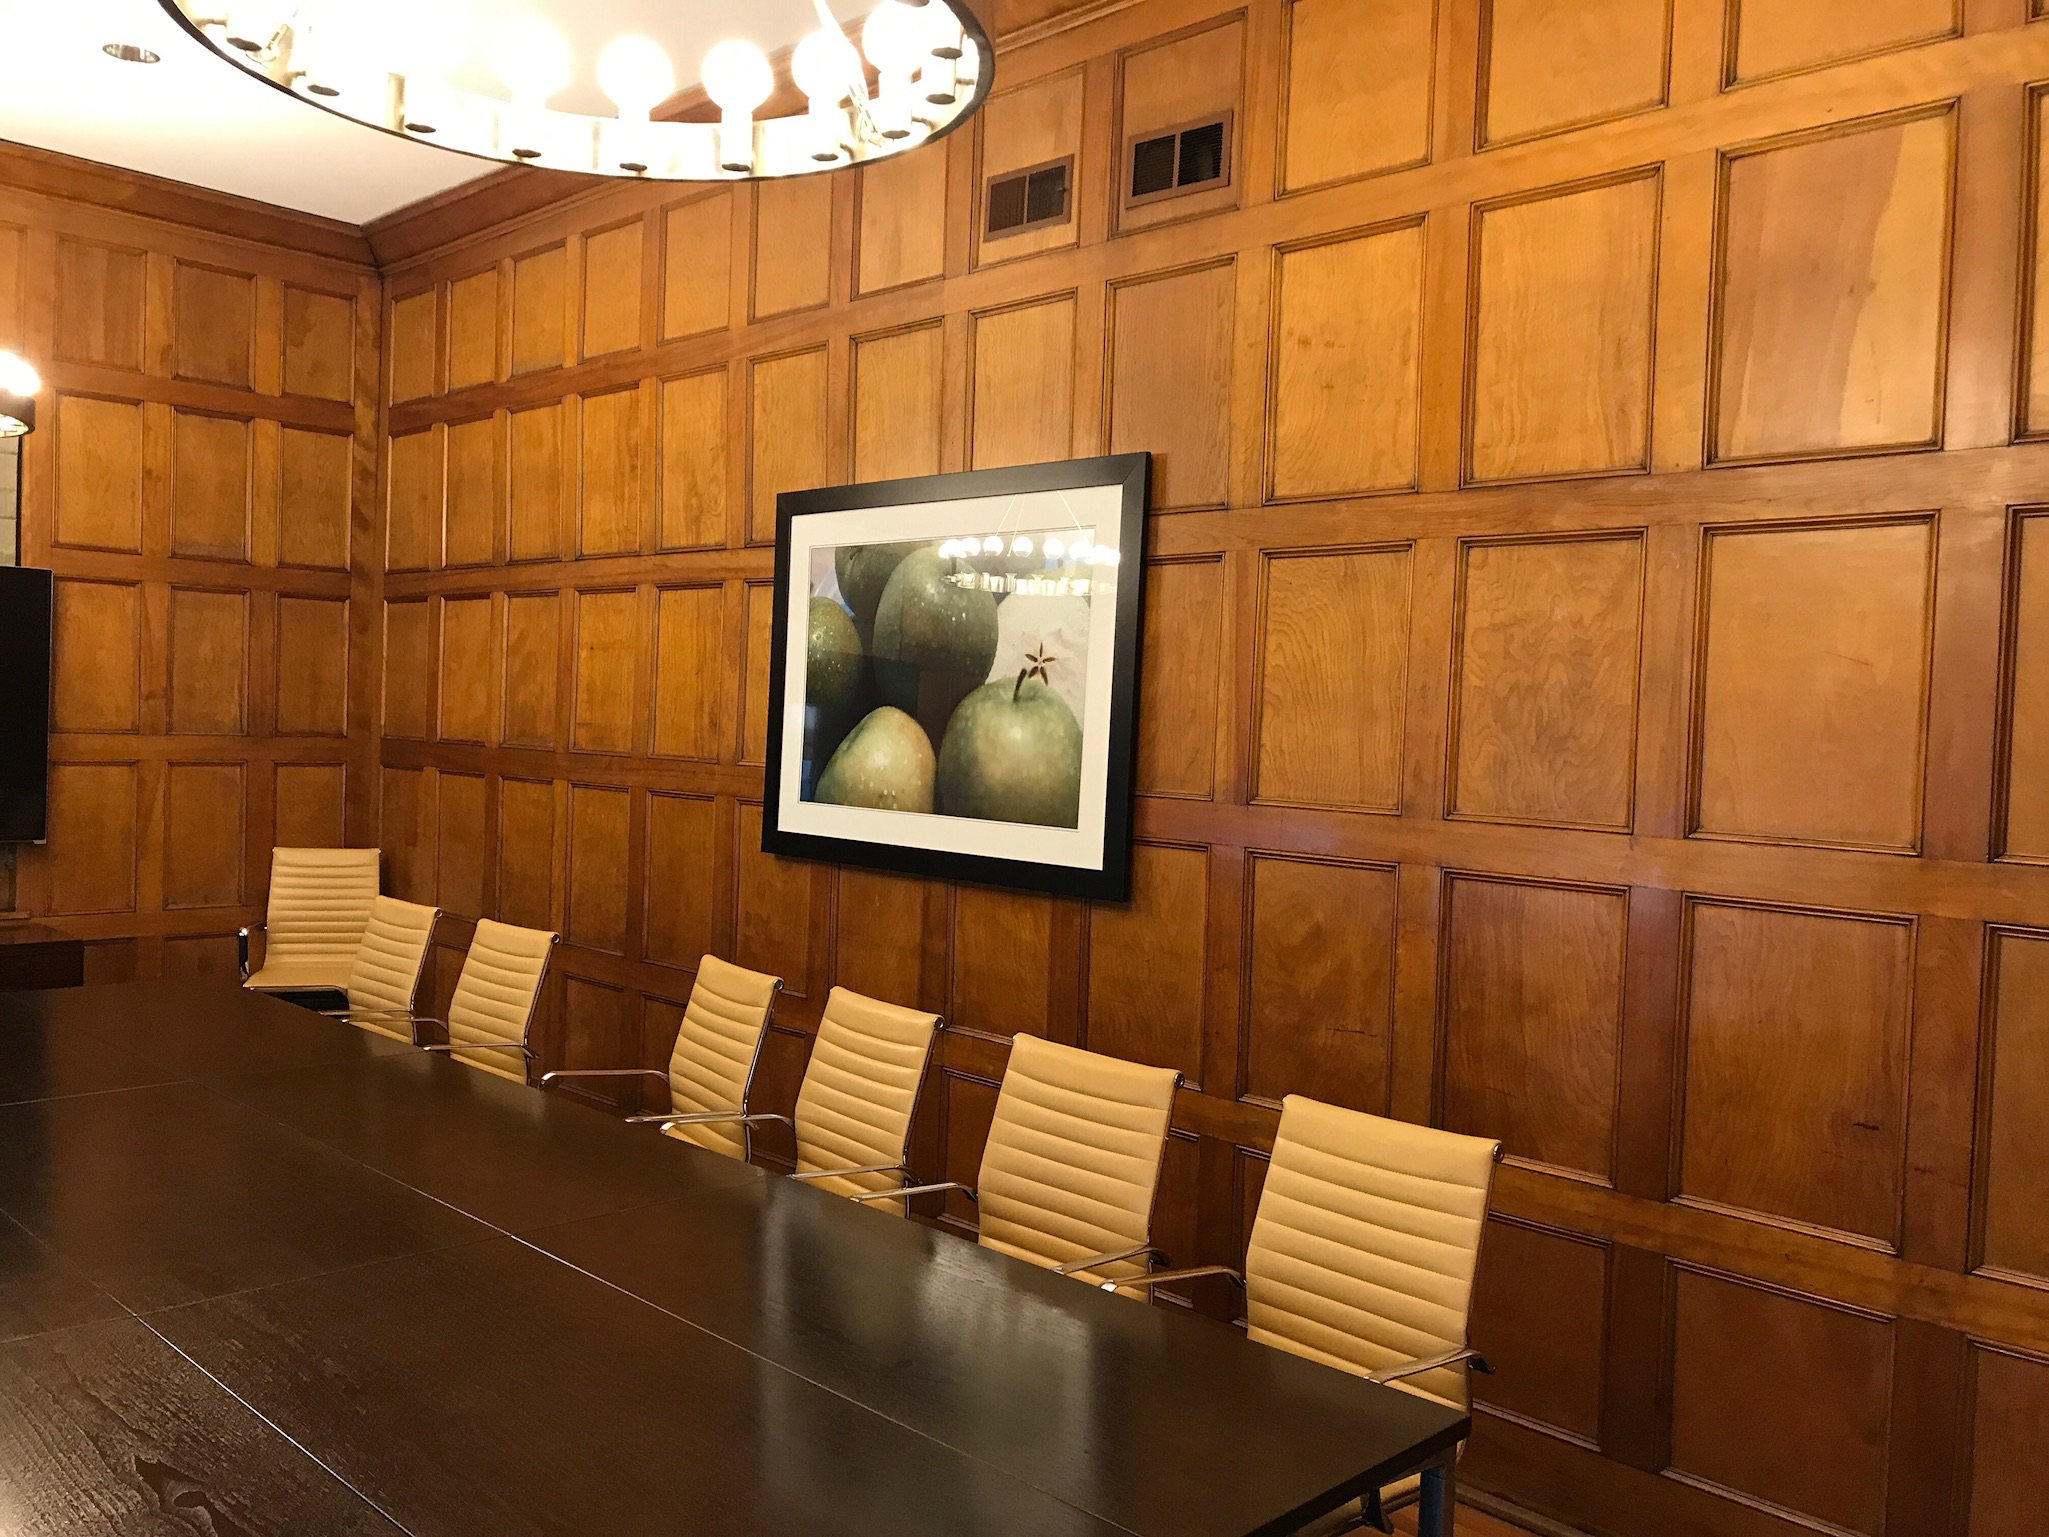 Hotel Indigo renovated meeting room